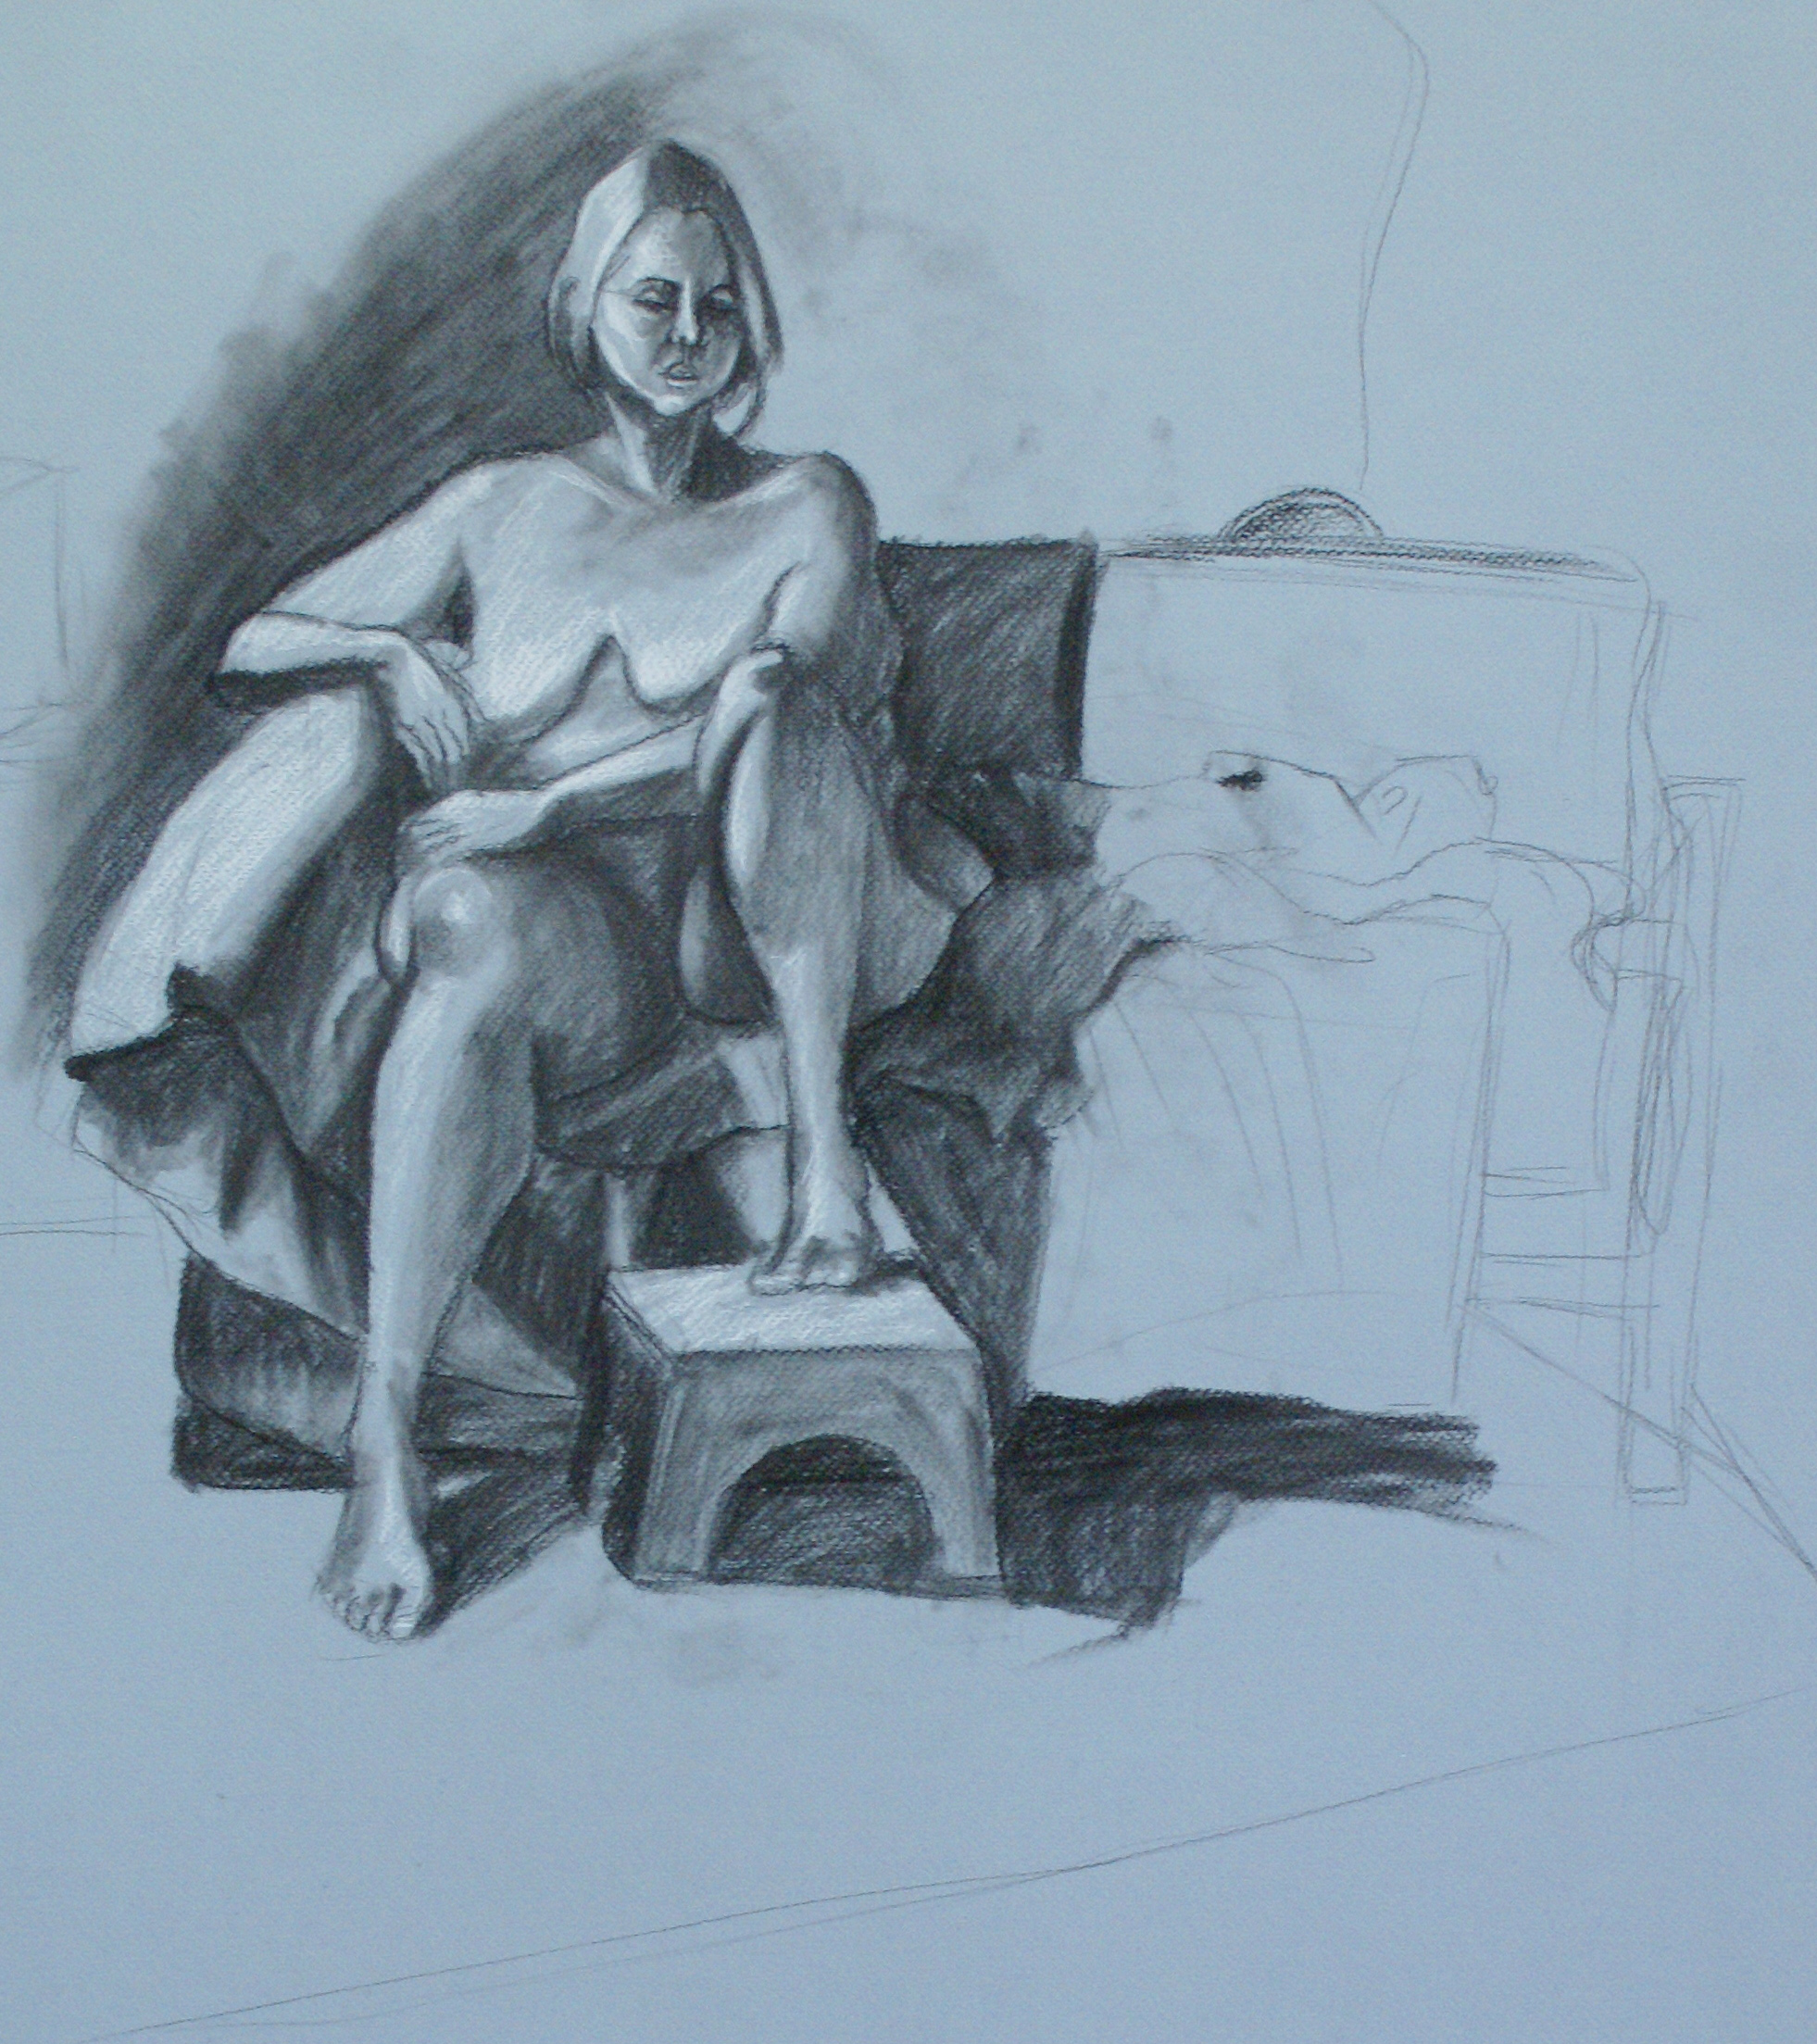 Orlando Rodriguez. Anatomy and Figure Drawing II. Charcoal on toned paper. 18 x 24 in.